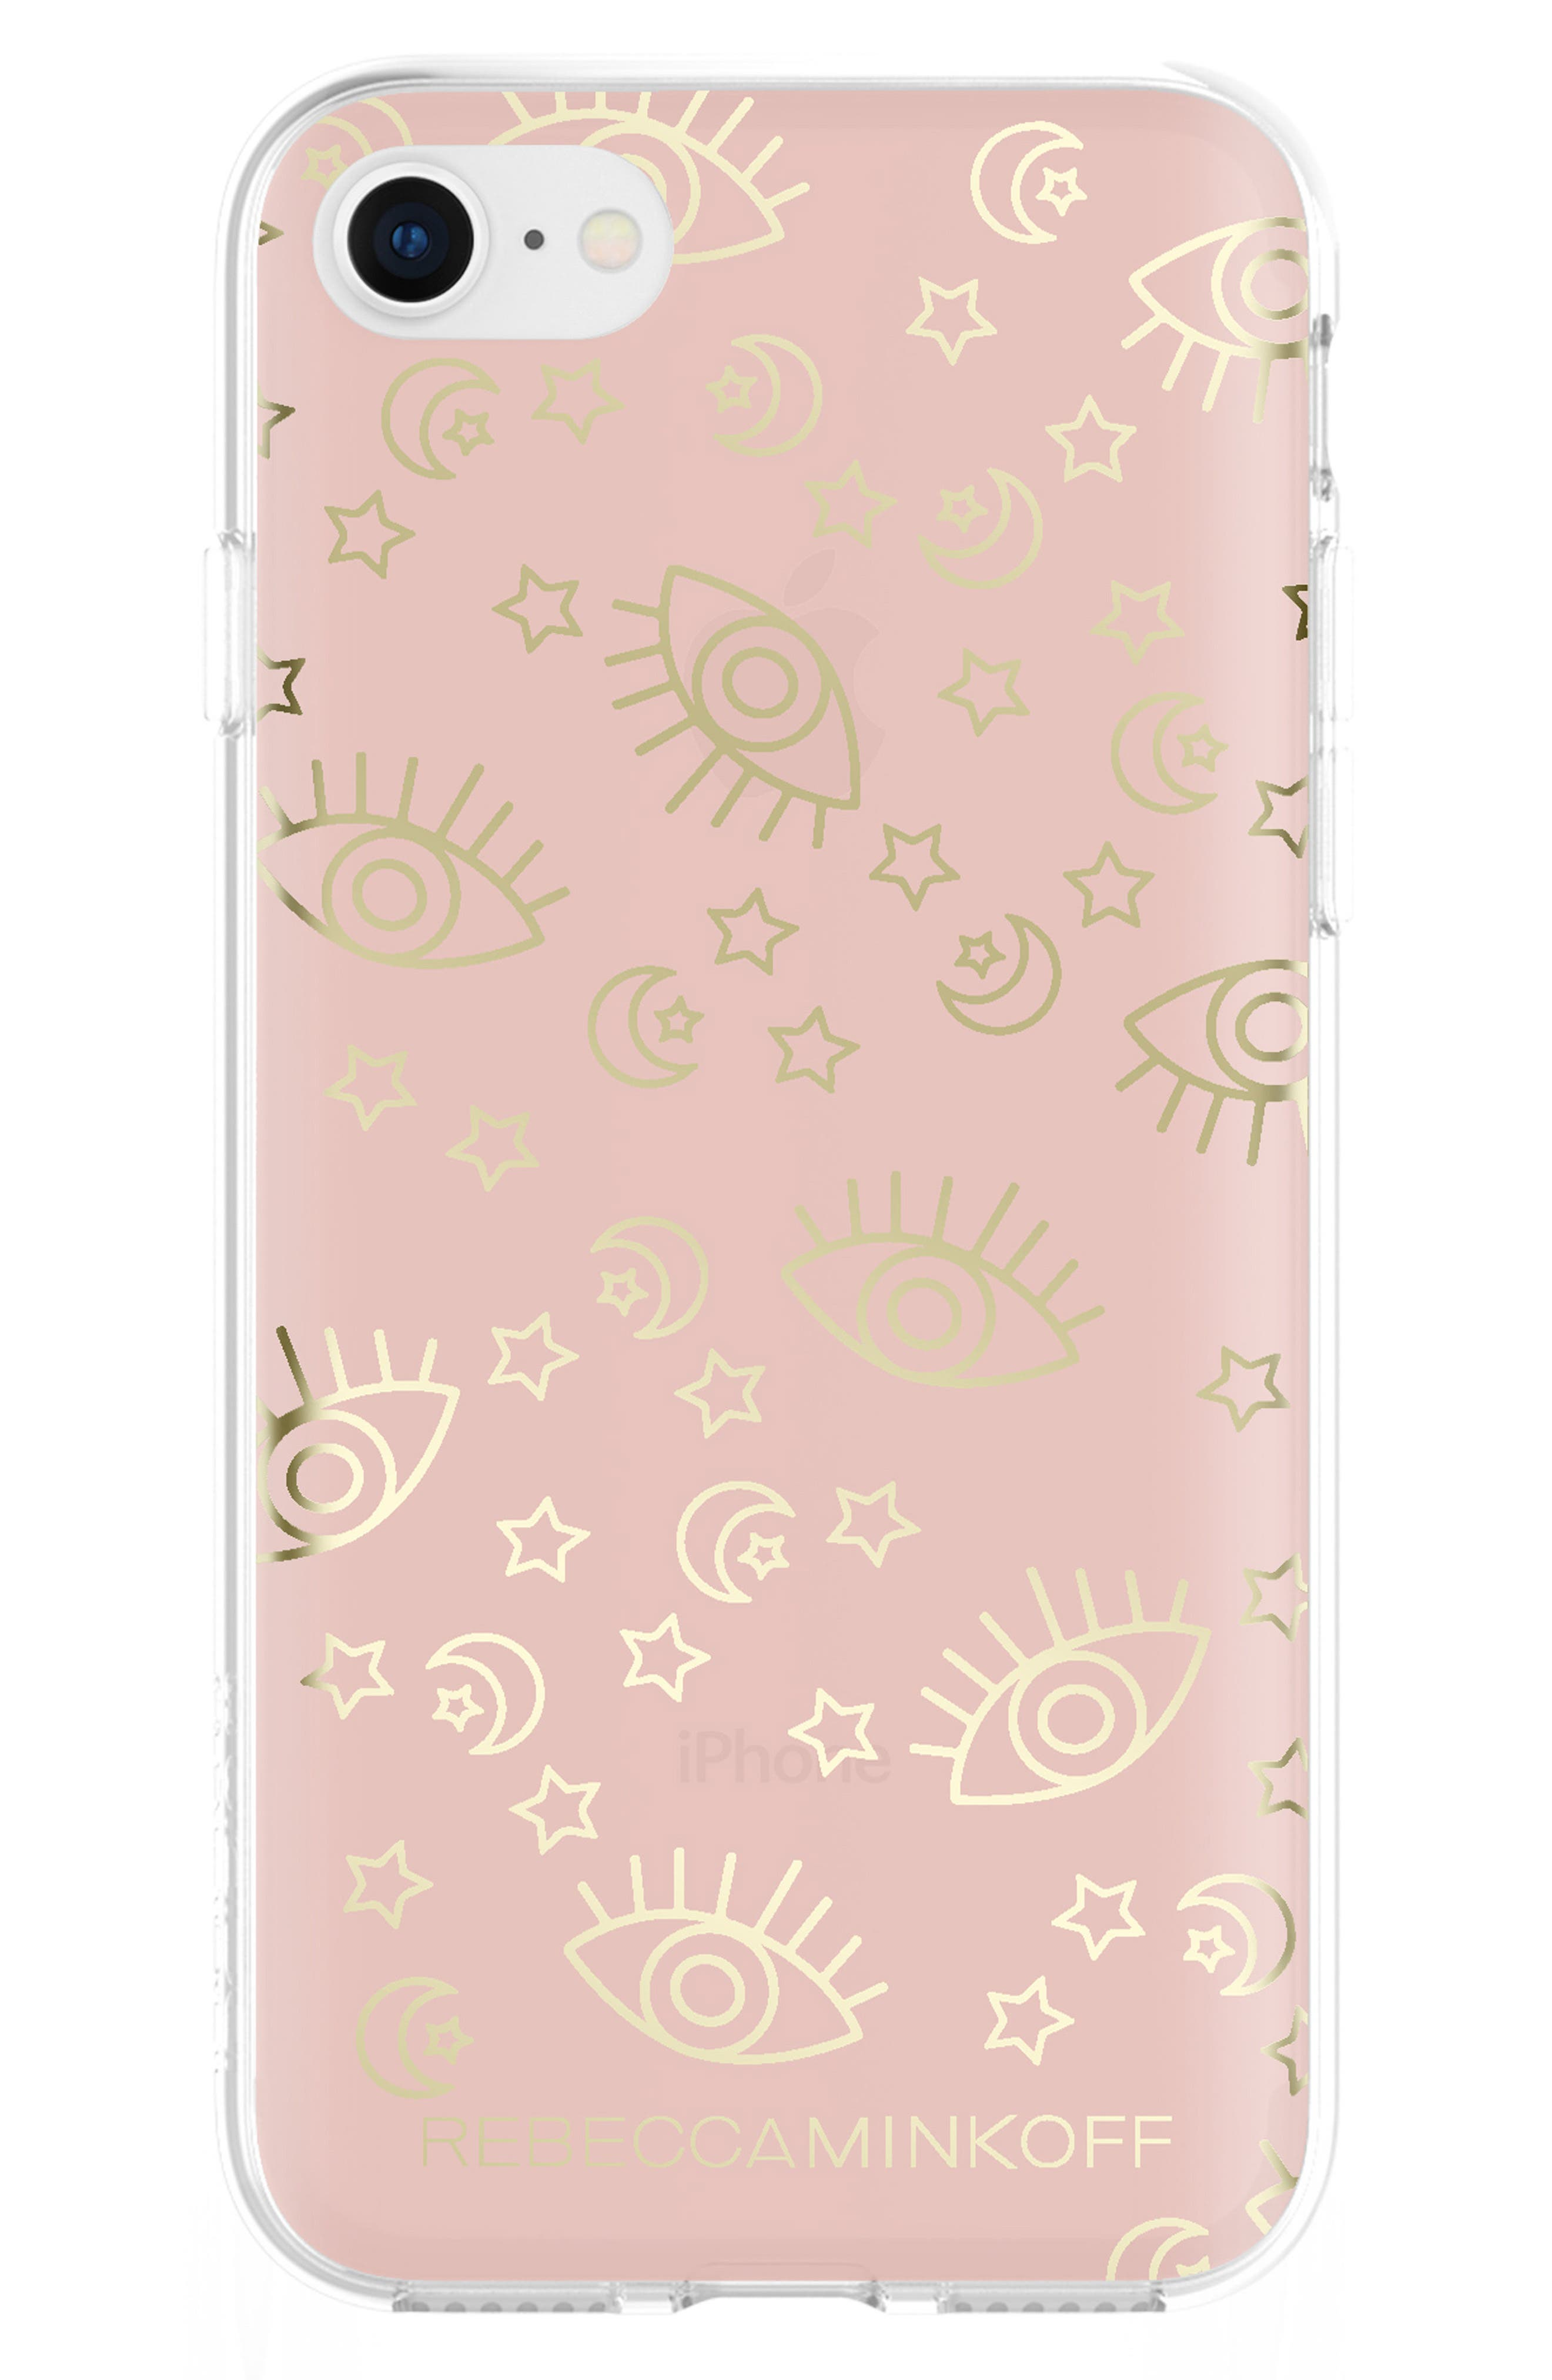 Metallic Galaxy Icon iPhone 7/8 & 7/8 Plus Case,                             Main thumbnail 1, color,                             ROSE GOLD/ GOLD FOIL